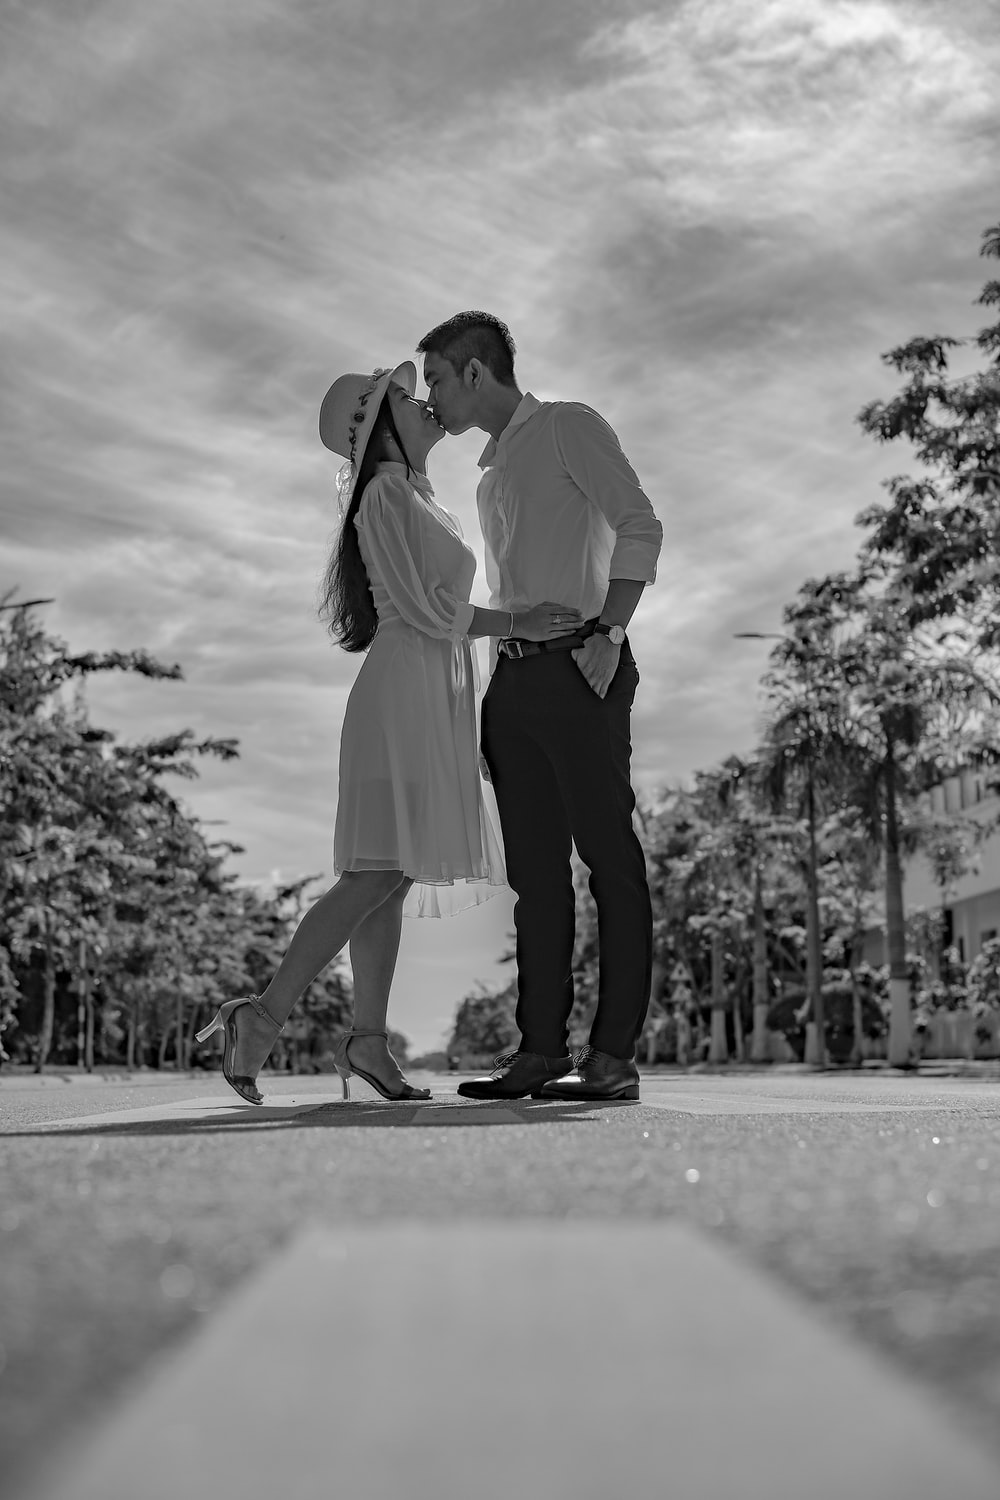 man and woman kissing on the road in grayscale photography